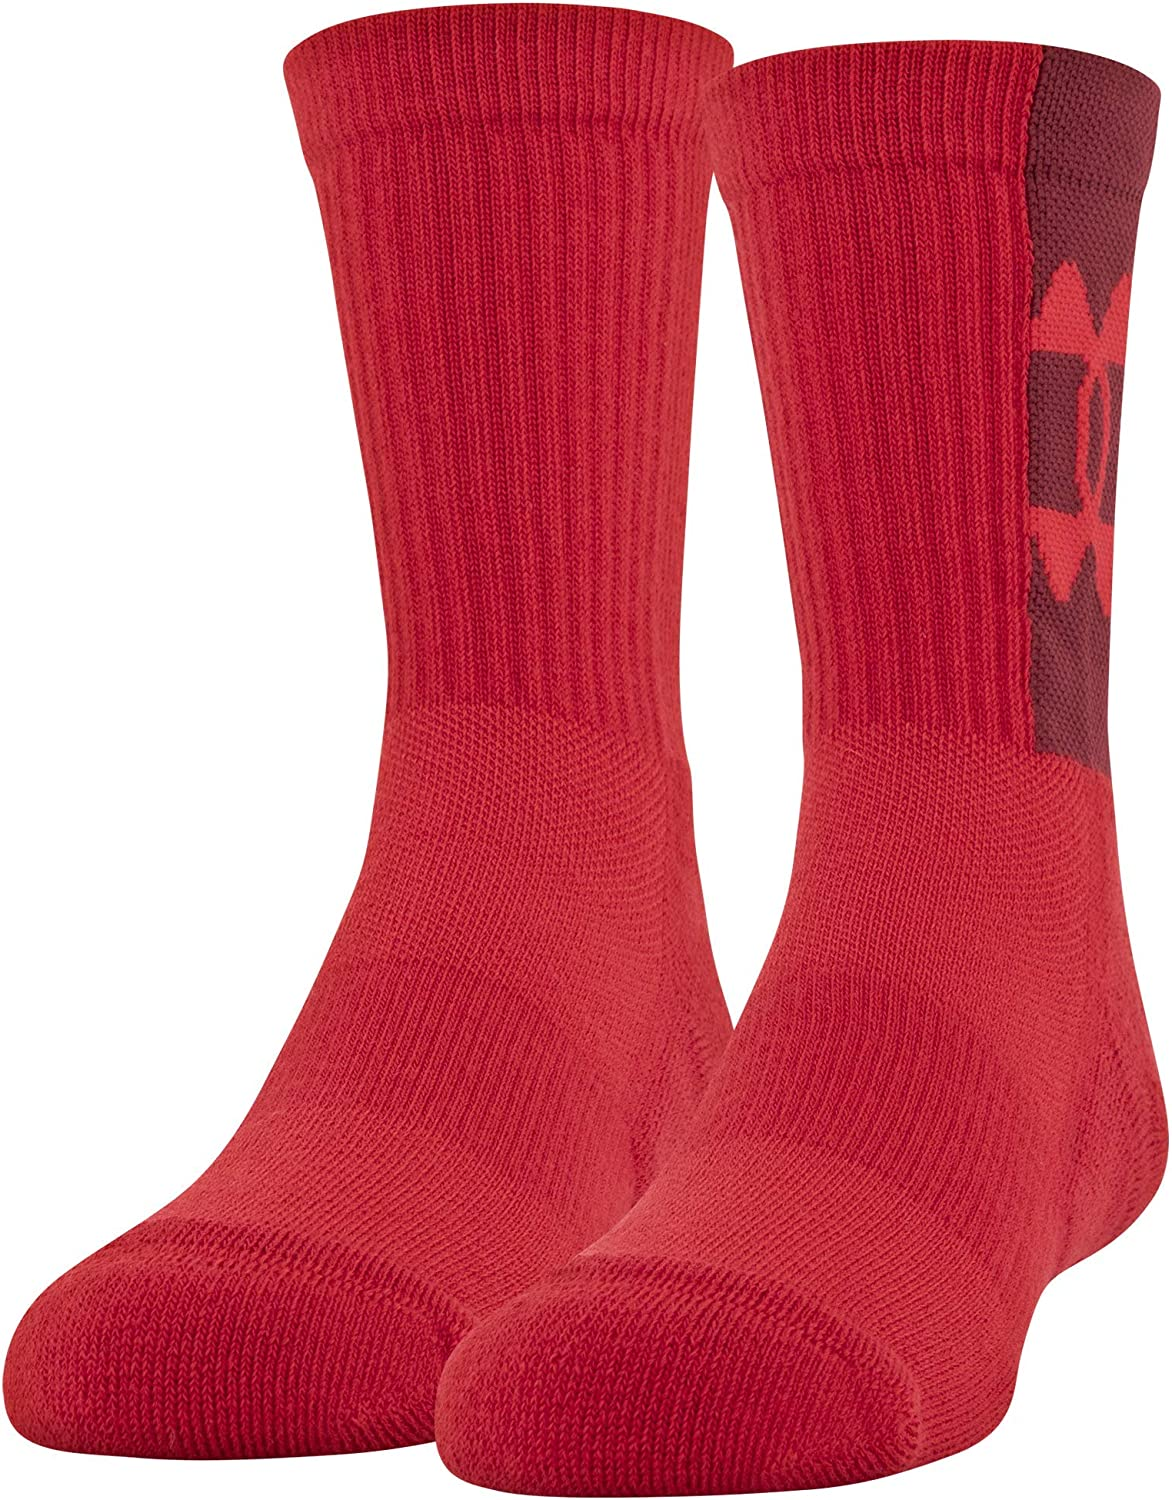 Under Armour Youth Game and Practice Crew Socks, 2-Pairs